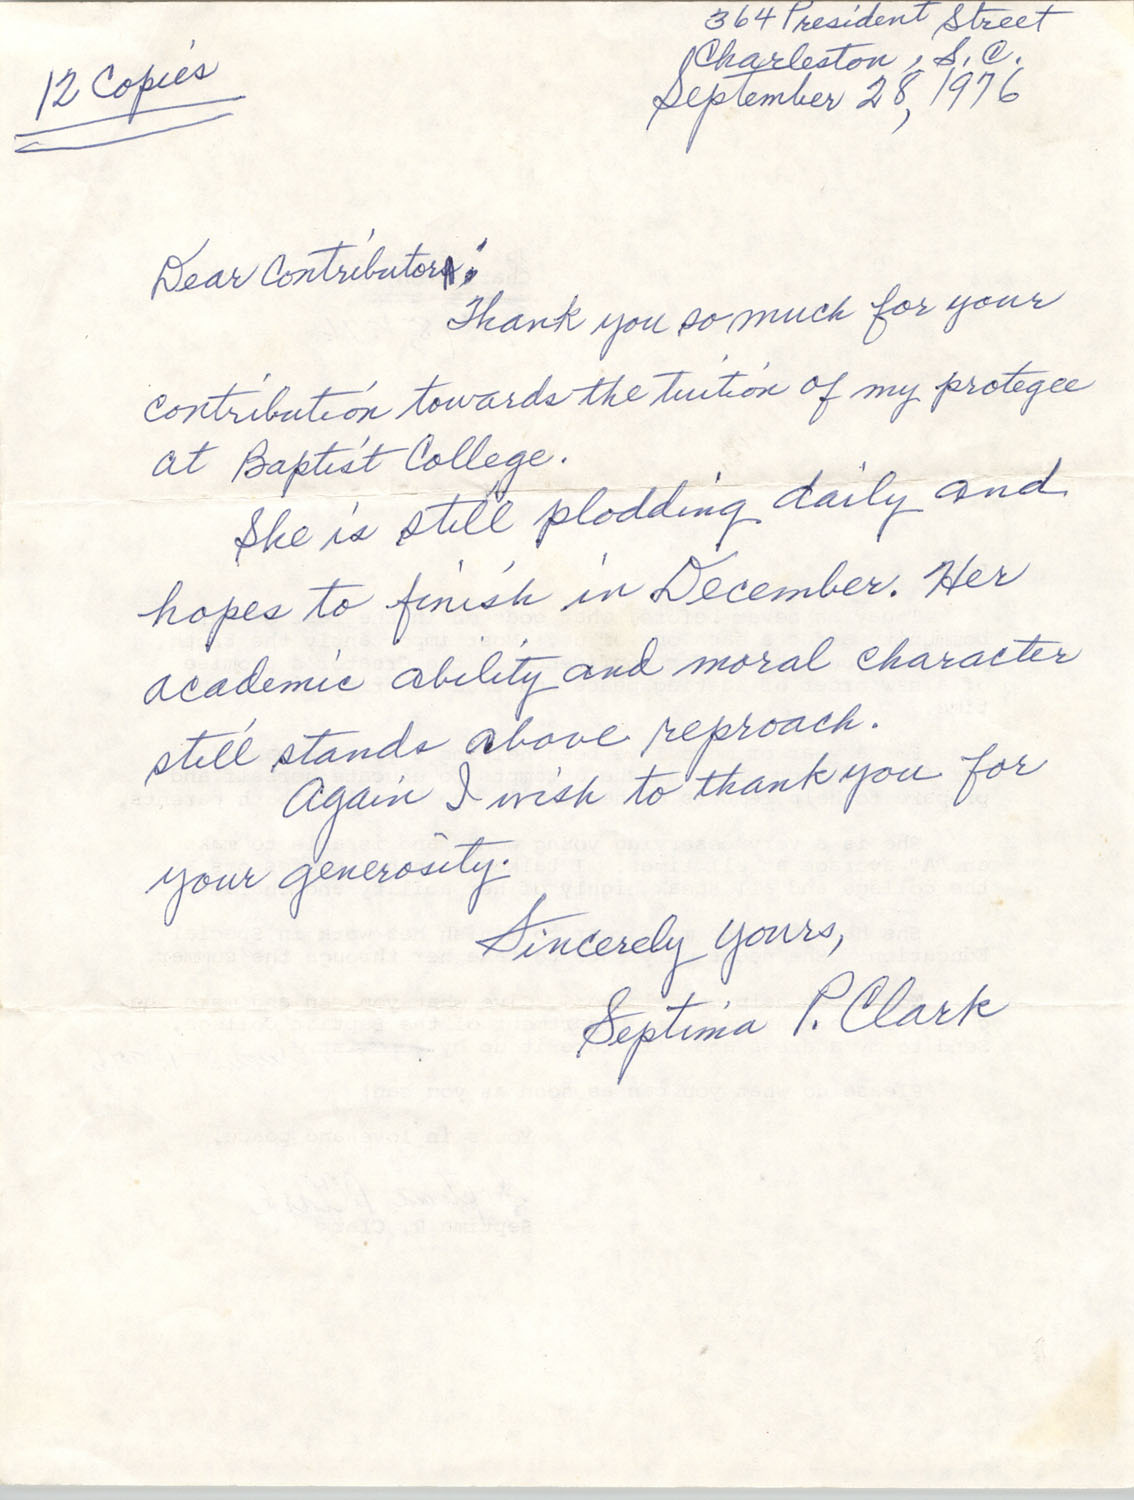 Letter from Septima P. Clark, September 28, 1976